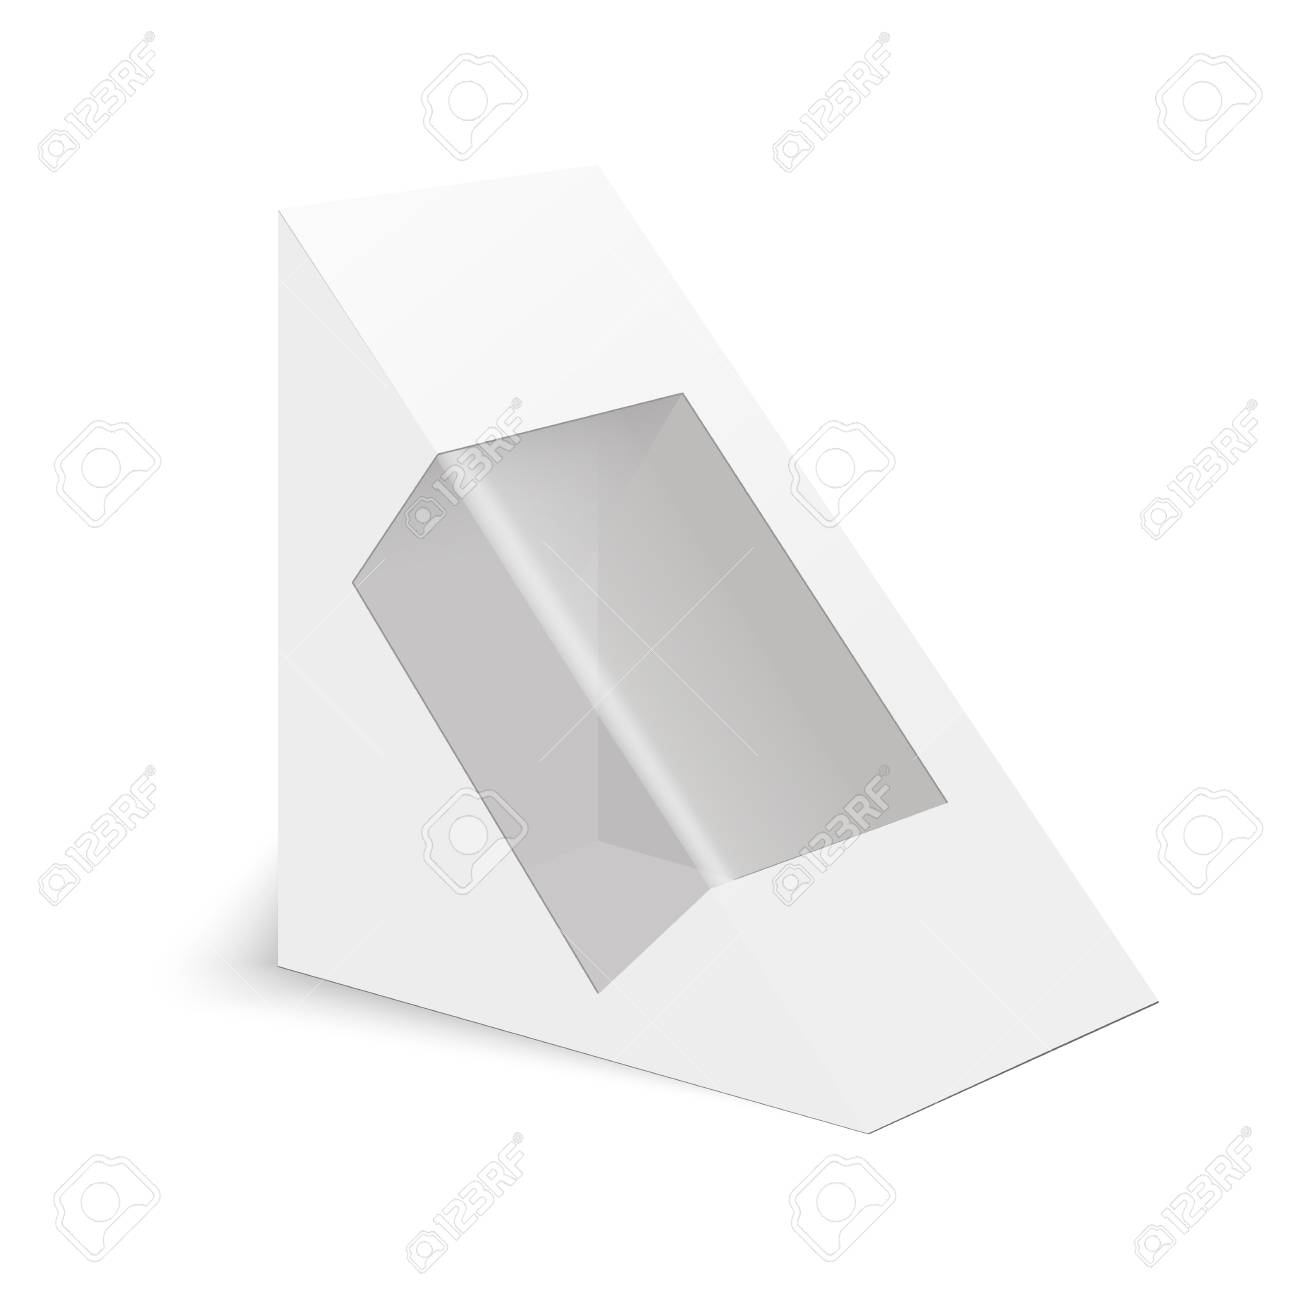 White Cardboard Triangle Box Packaging For Sandwich Food Gift